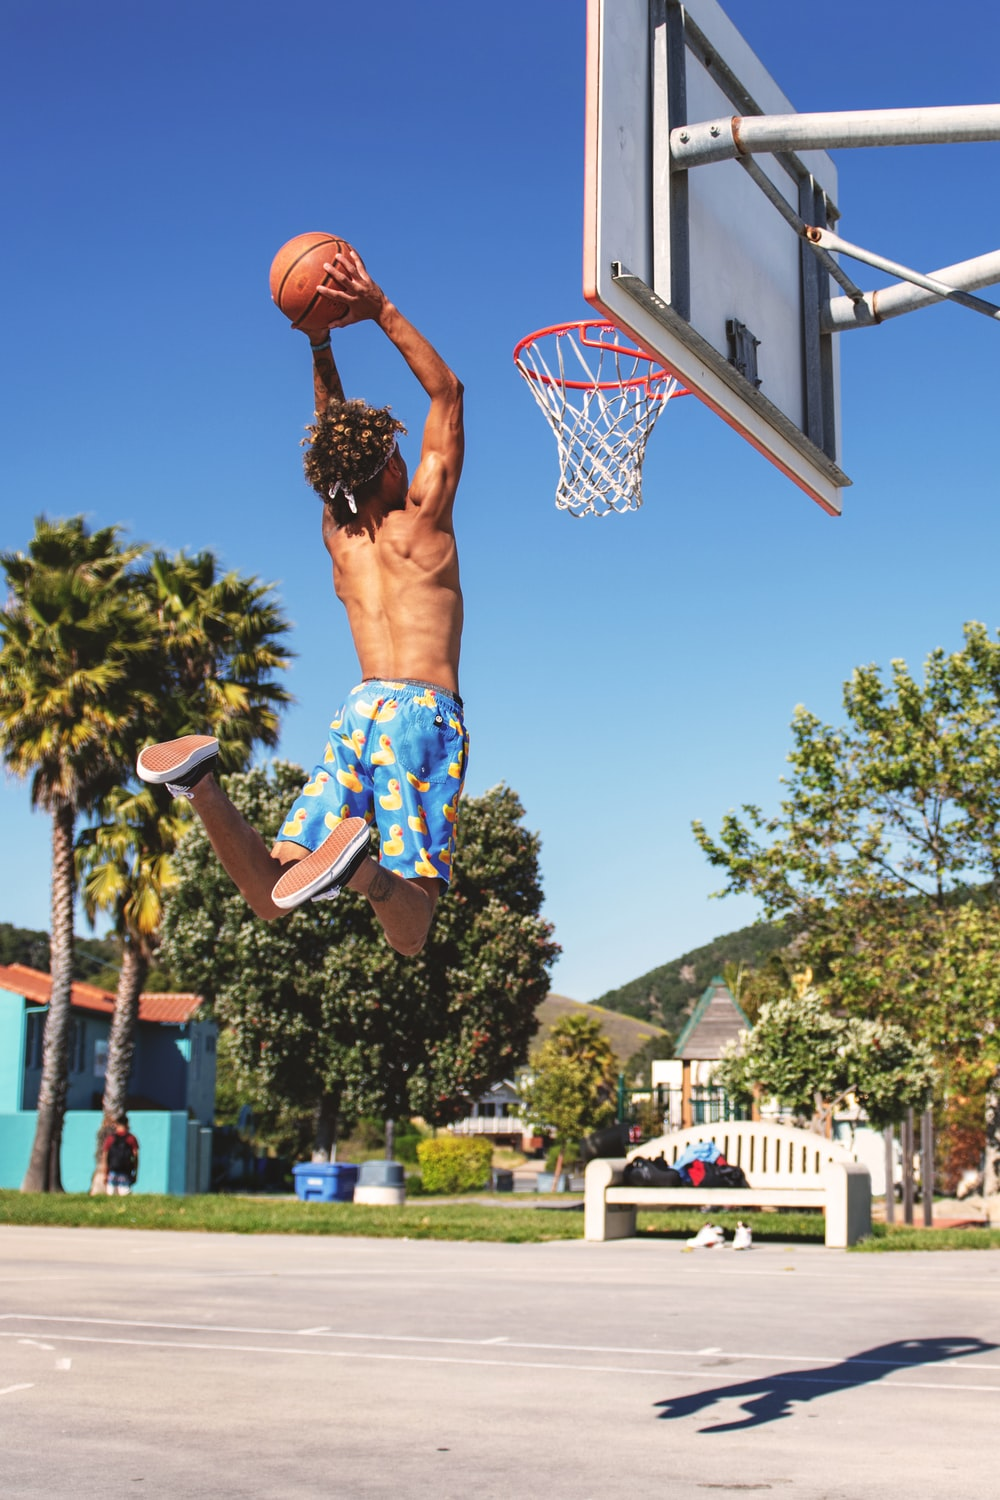 person dunking ball under blue sky during daytime